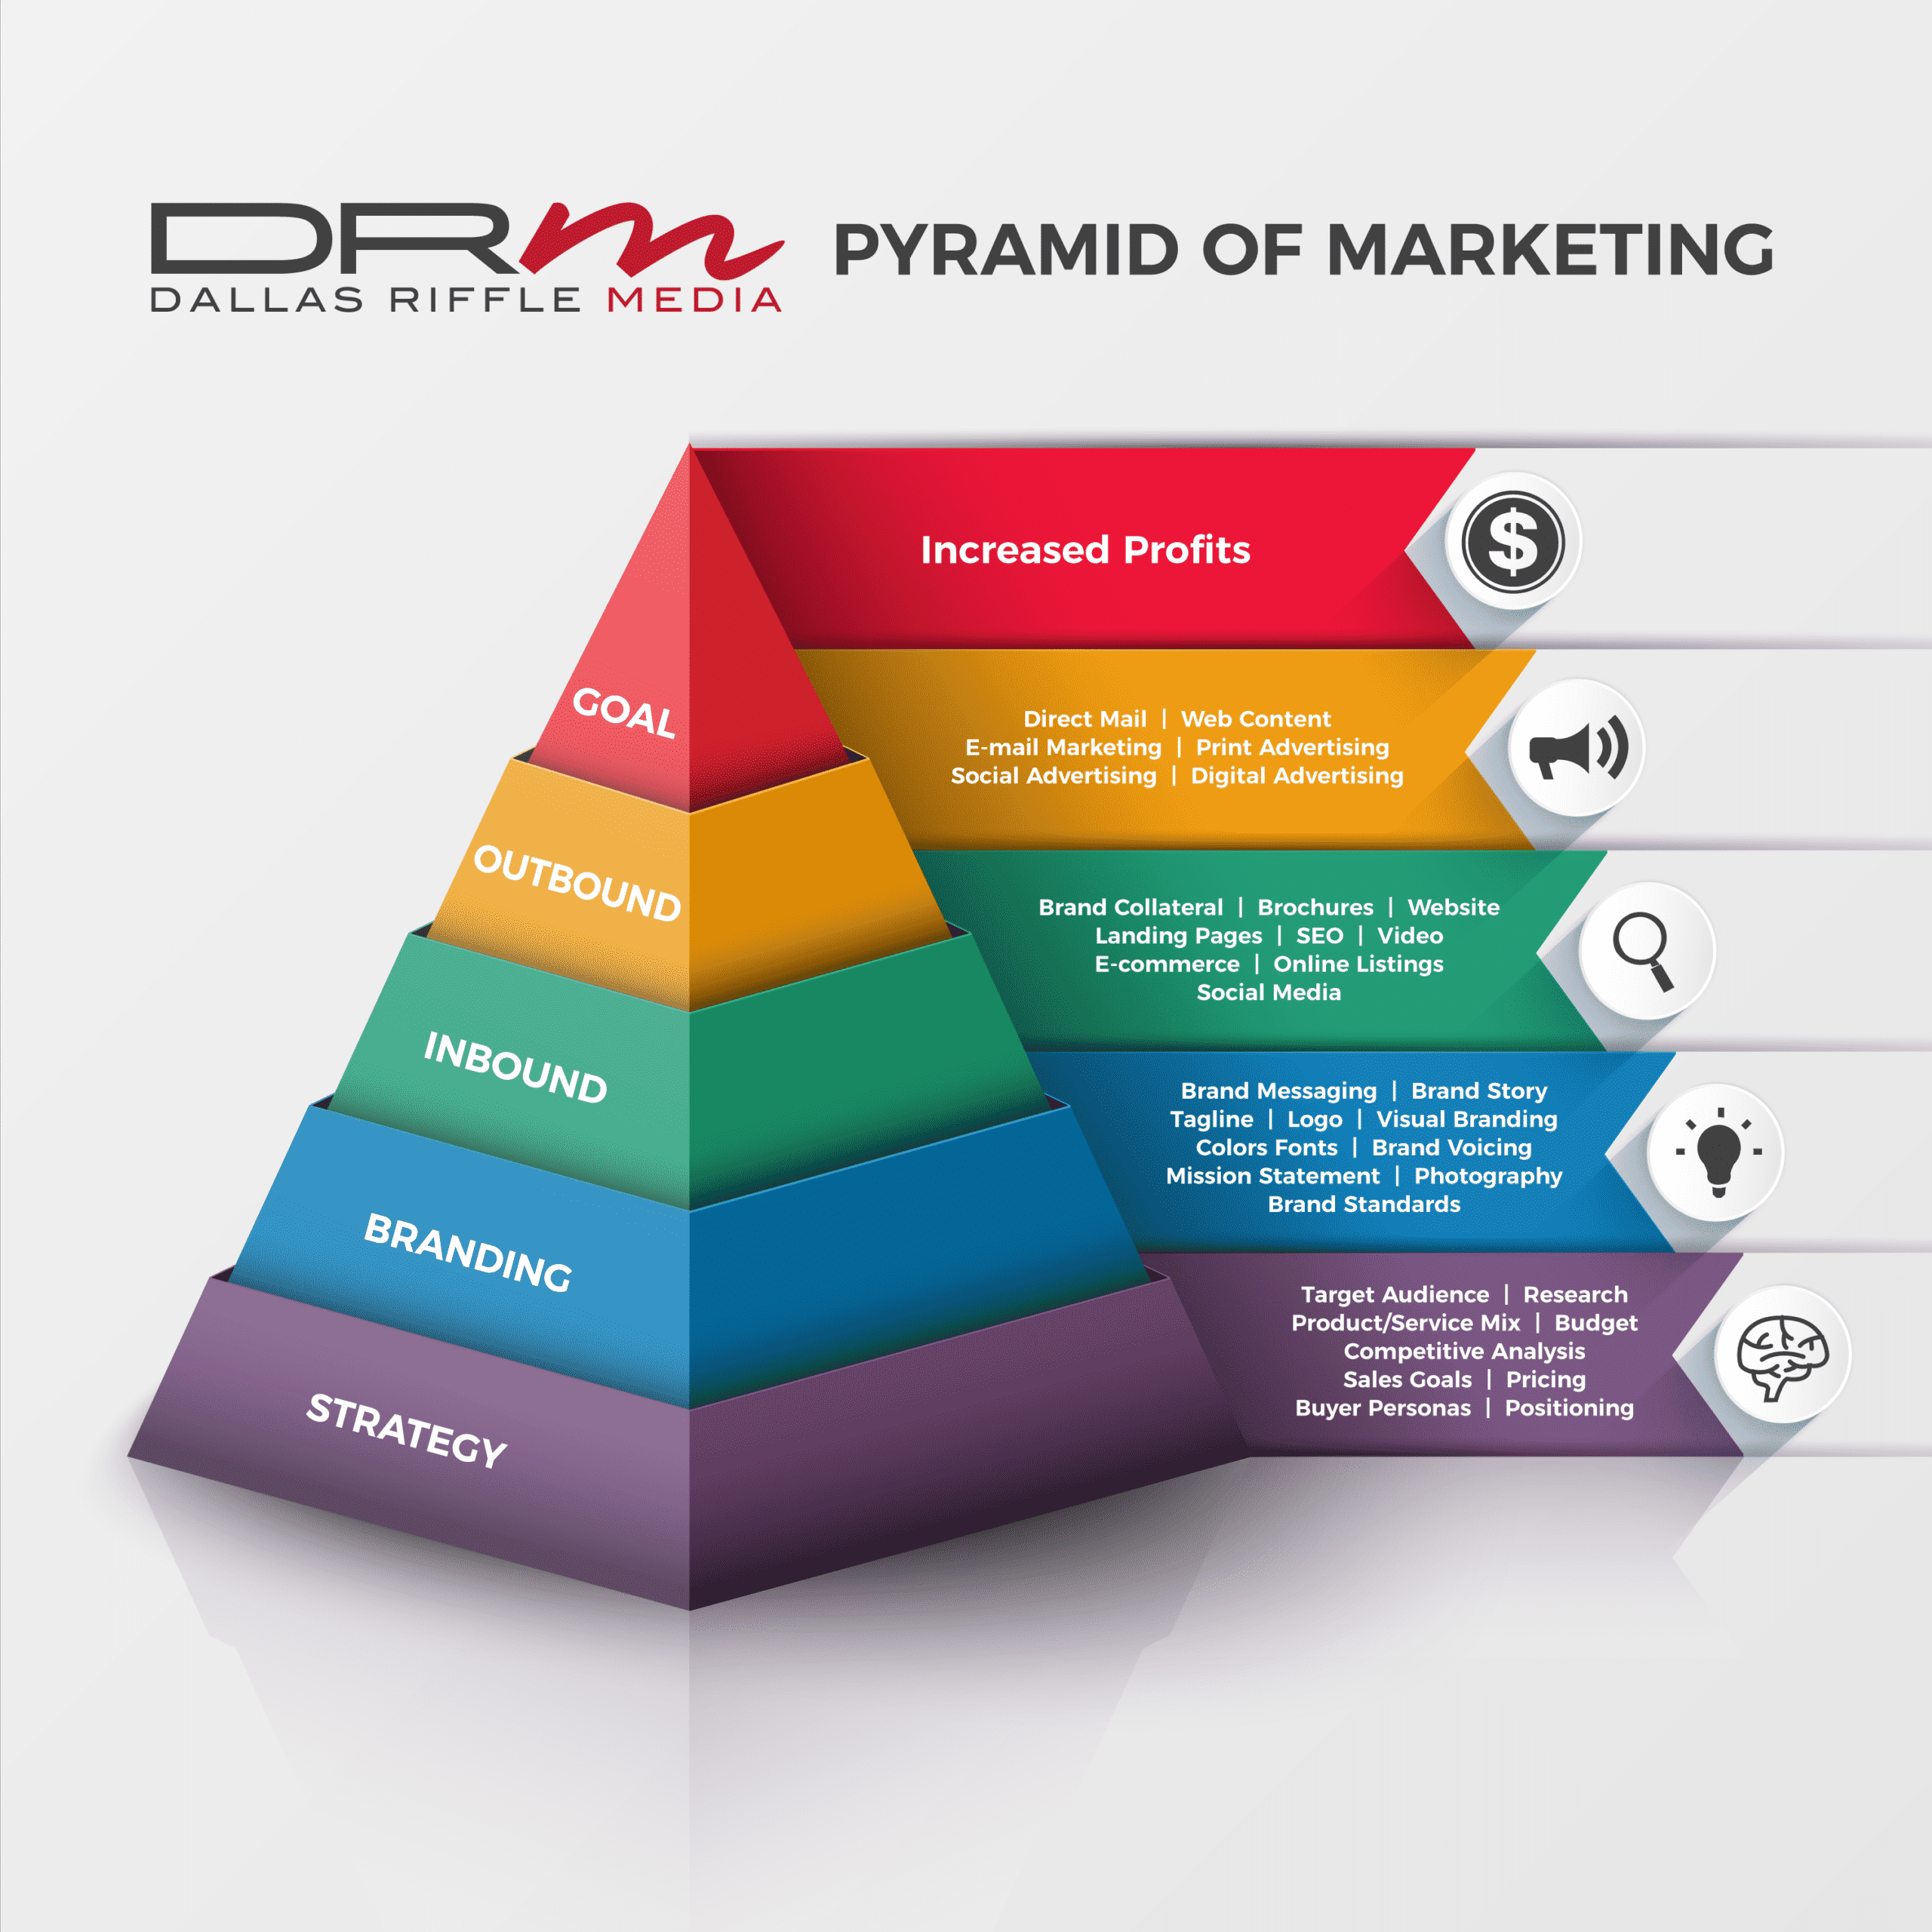 What is the Pyramid of Marketing?